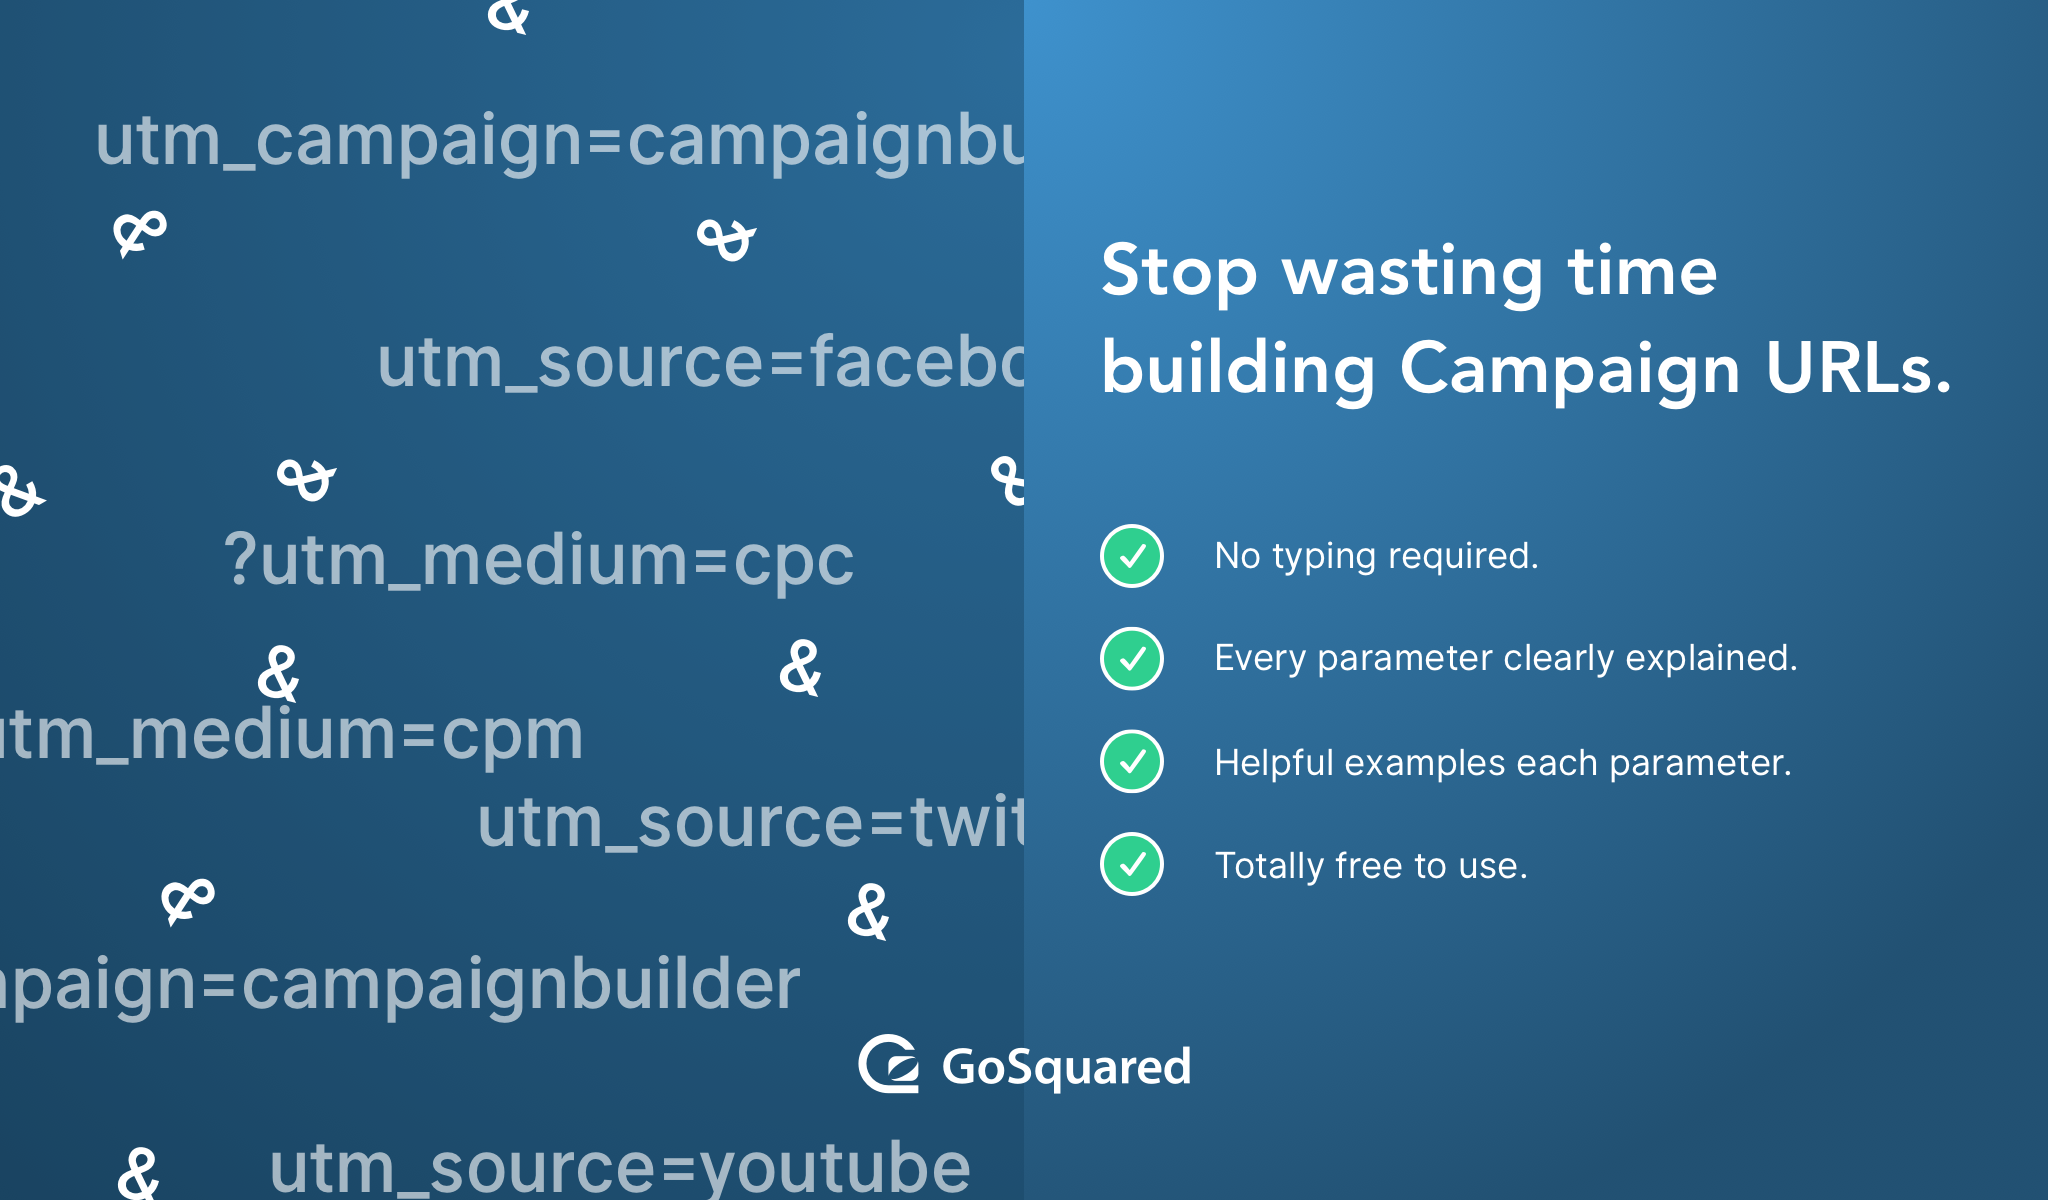 Try the free Campaign URL Builder now